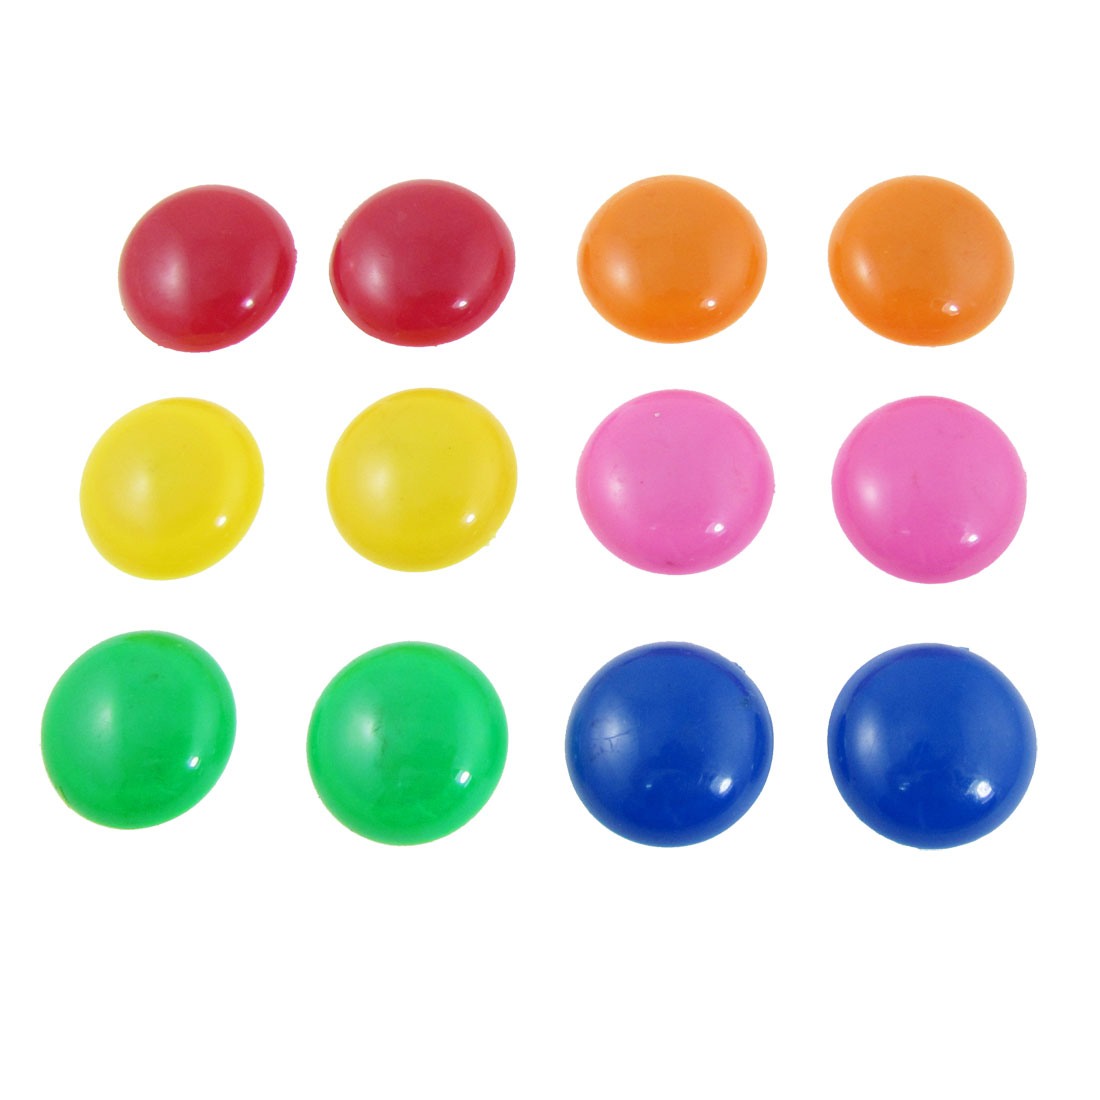 12 Pcs 6 Colors 30mm Dia Round Fridge Magnets Paper Holder Set